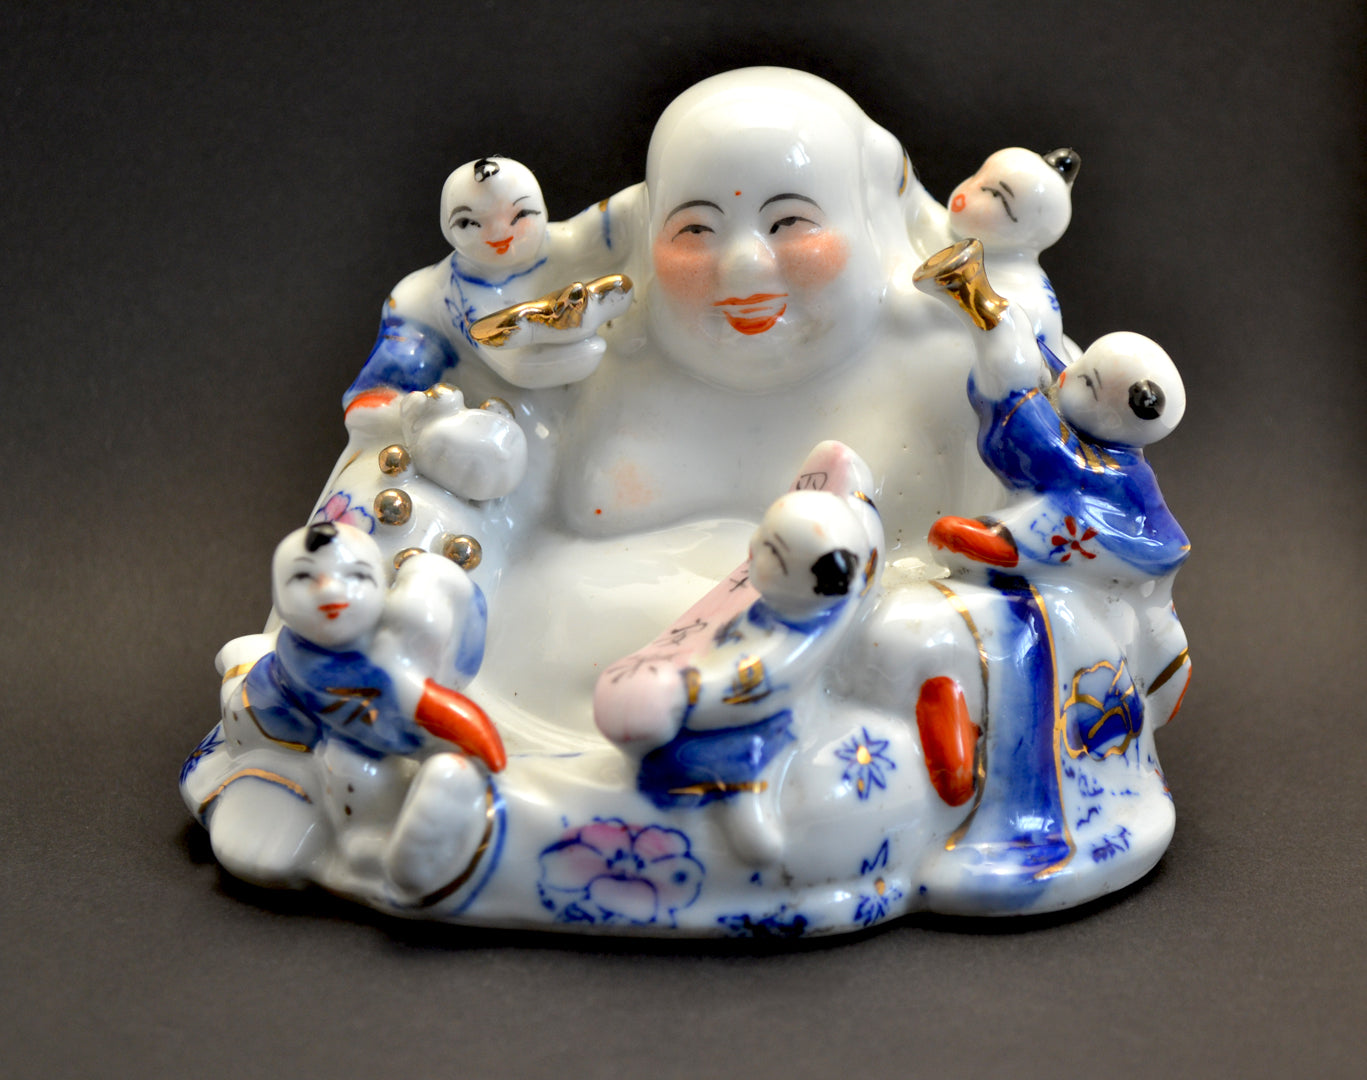 Porcelain Laughing Buddha Figure with Five Children